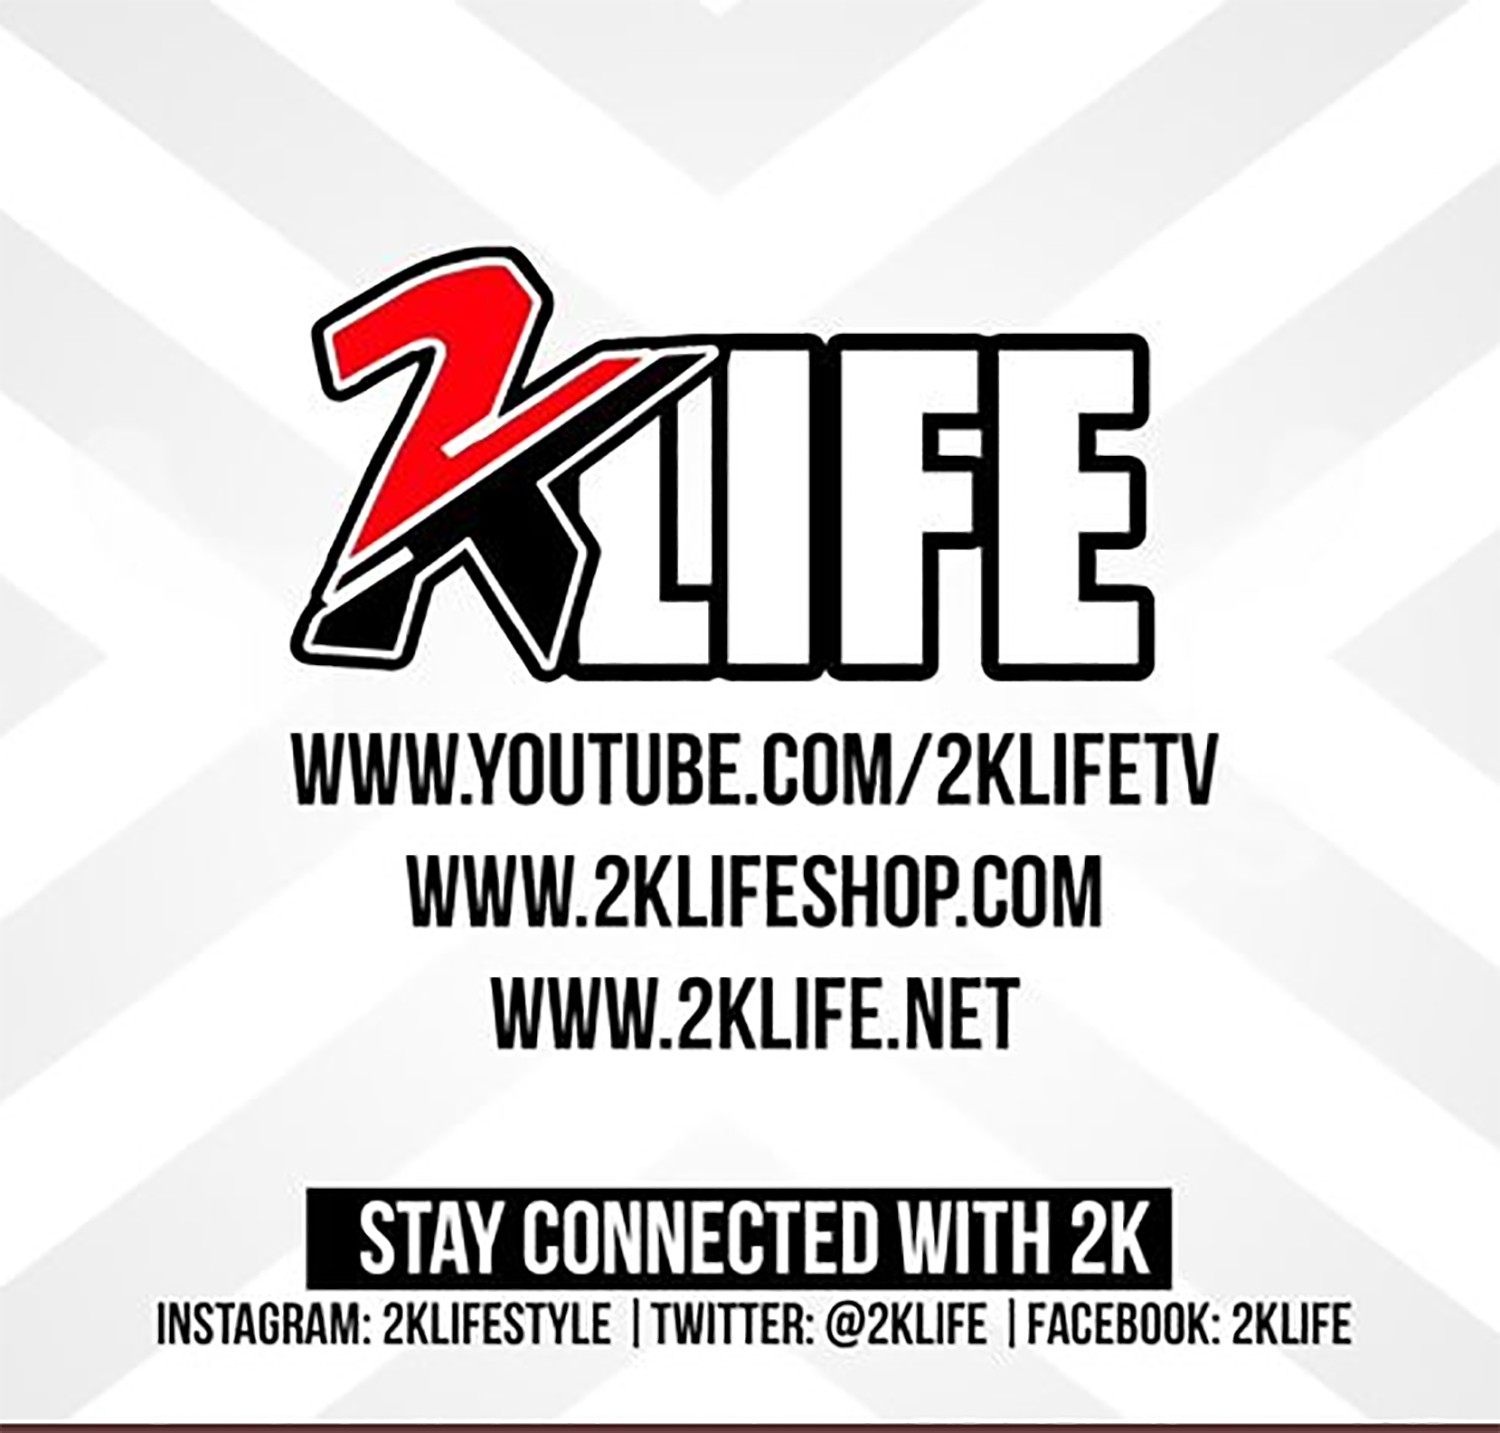 2KLIFE Network